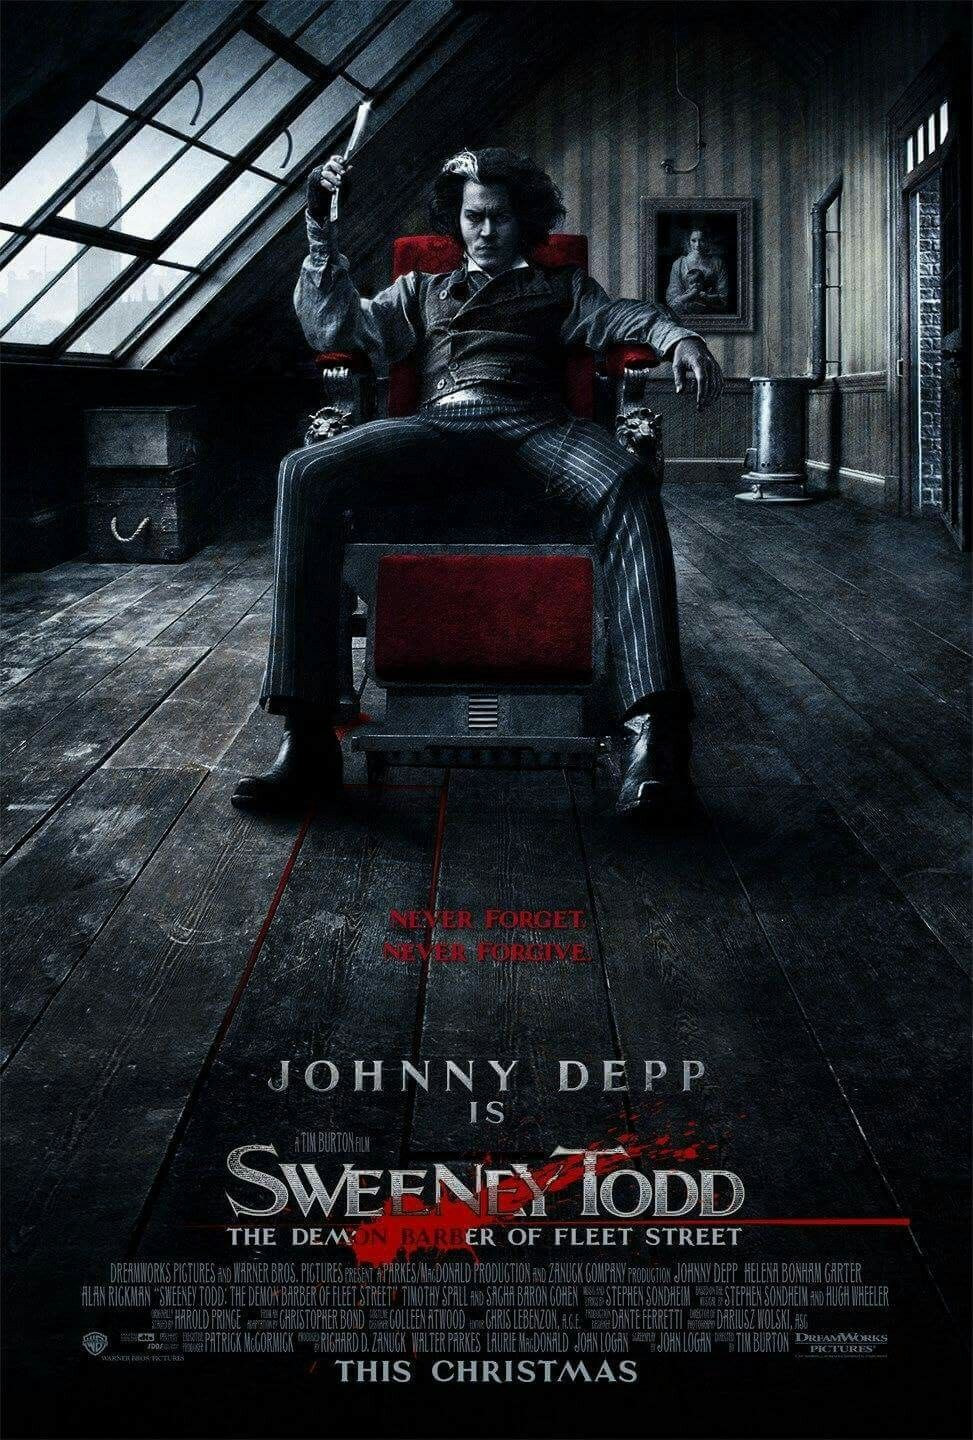 Sweeney Todd The Demon Barber of Fleet Street movie poster ...